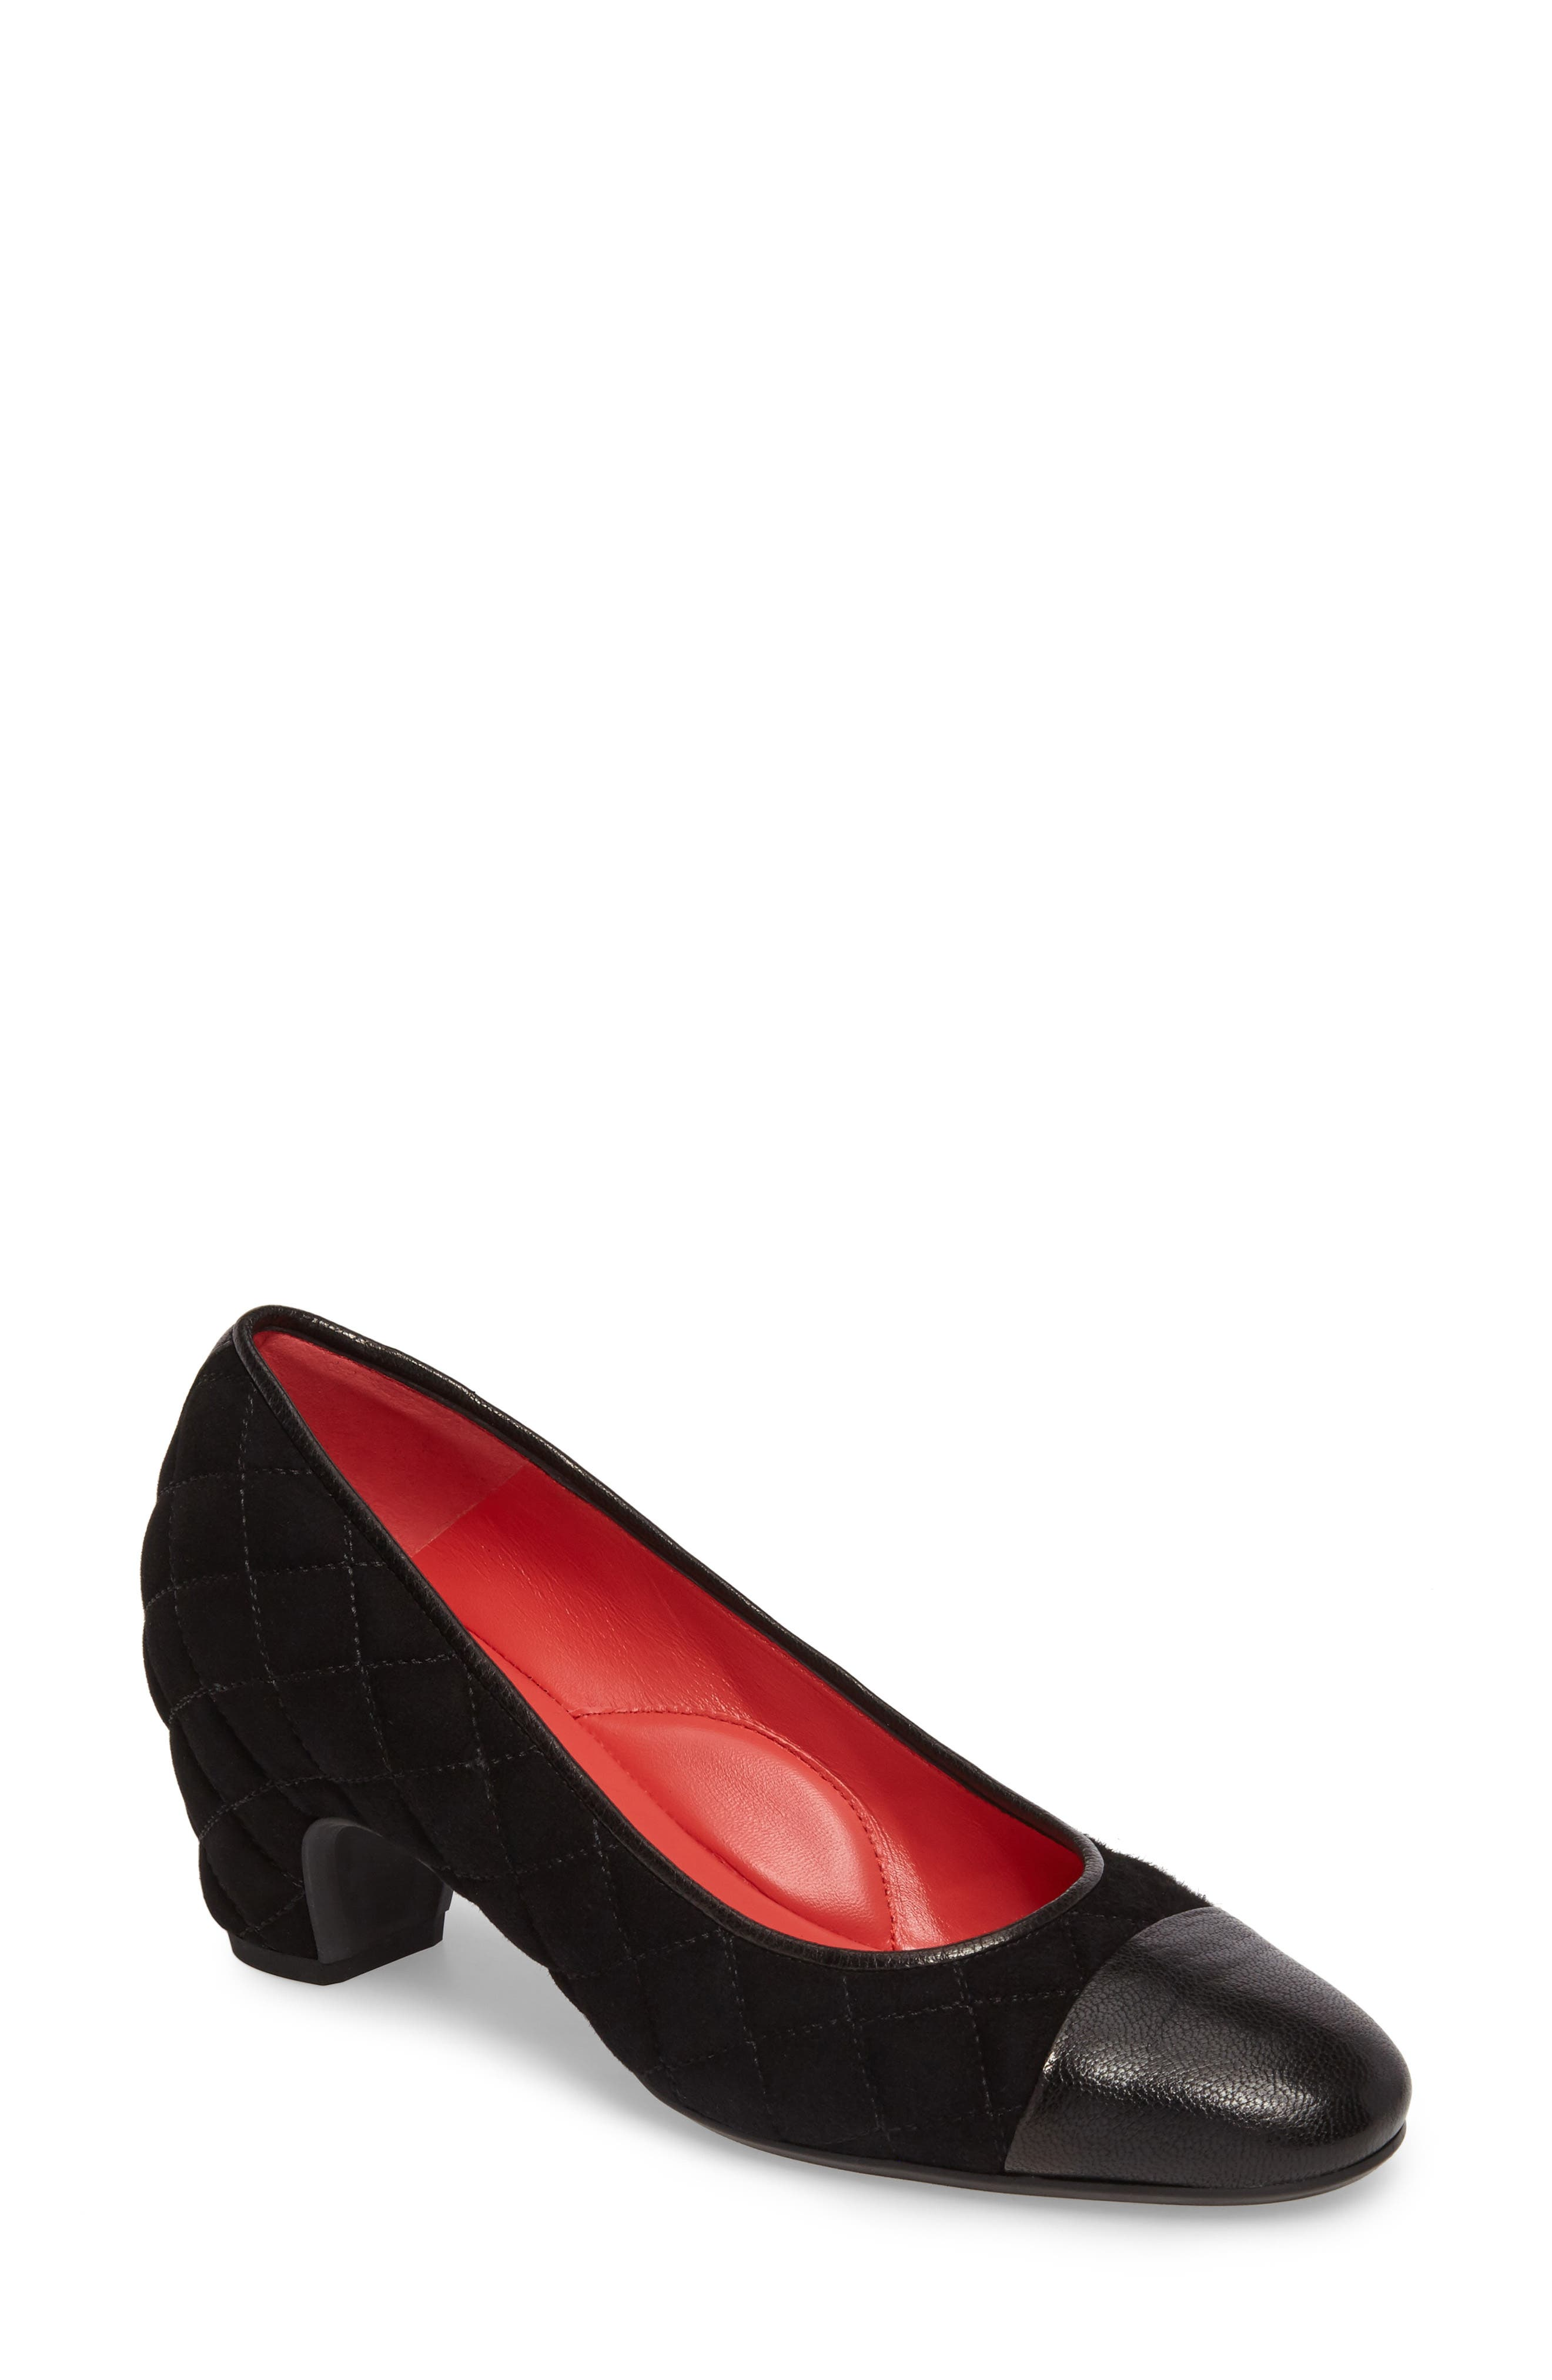 Quilted Cap Toe Pump,                             Main thumbnail 1, color,                             001